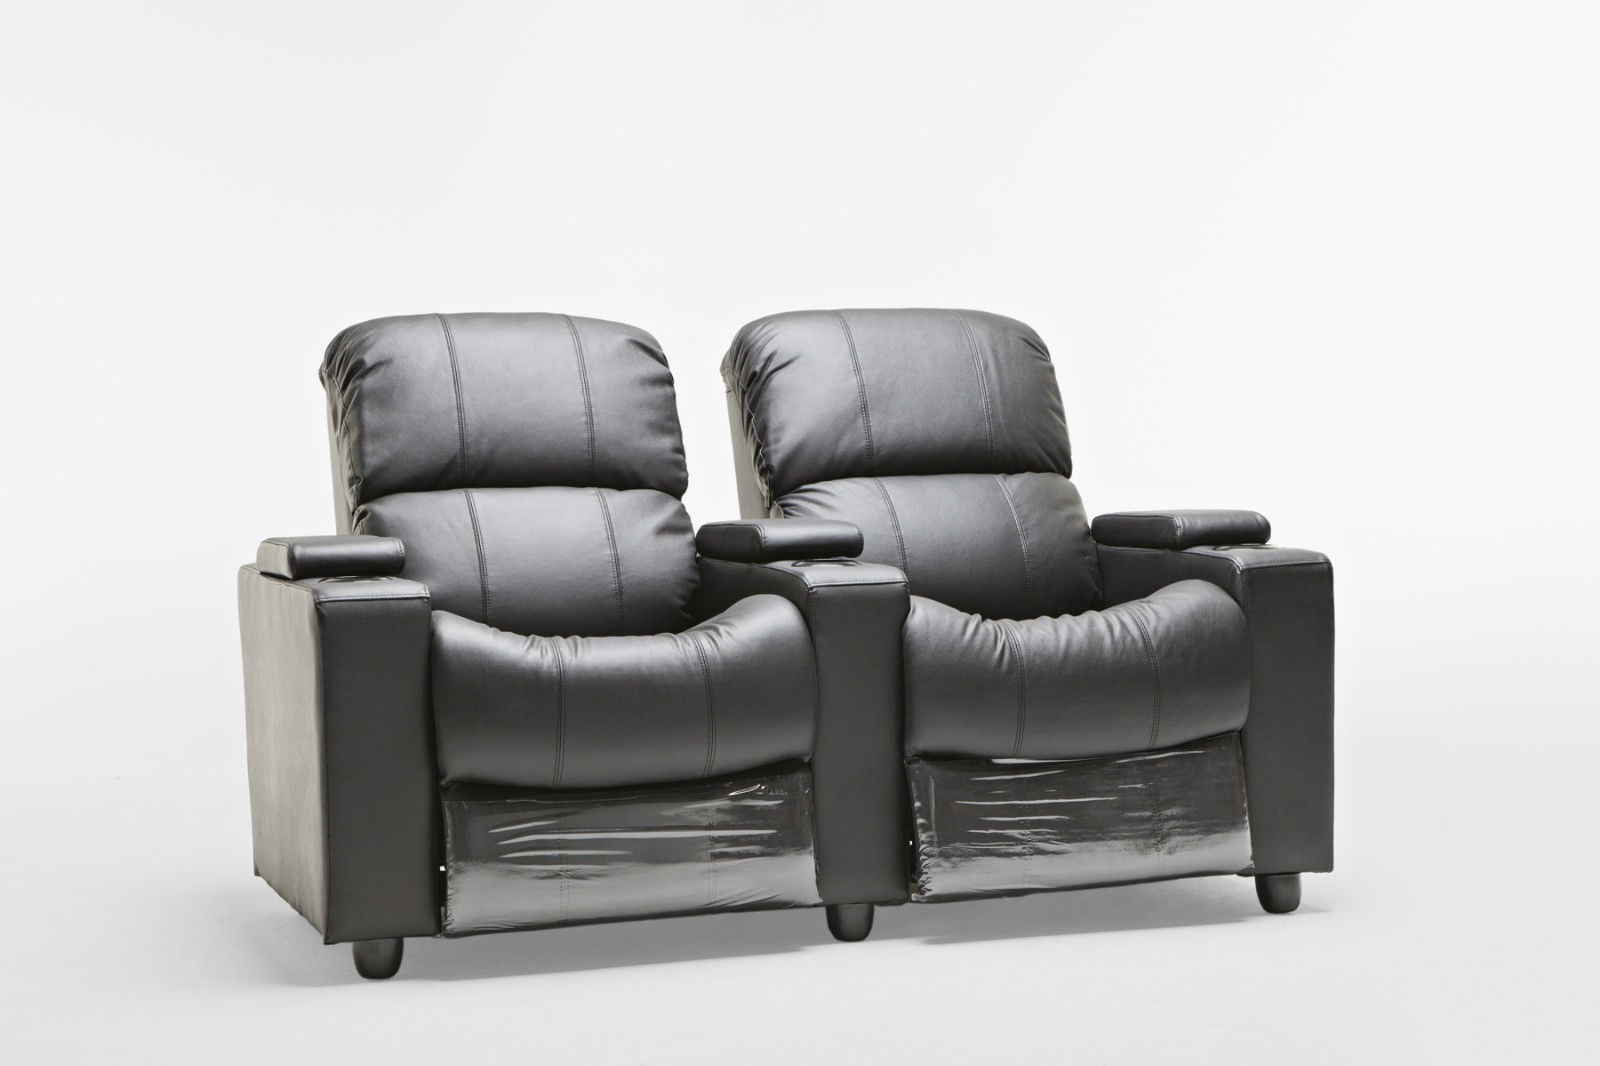 Sophie Brand New Black Leather 2 Seater Recliner Home Theatre Lounge Suite & Sophie Brand New Black Leather 2 Seater Recliner Home Theatre ... islam-shia.org